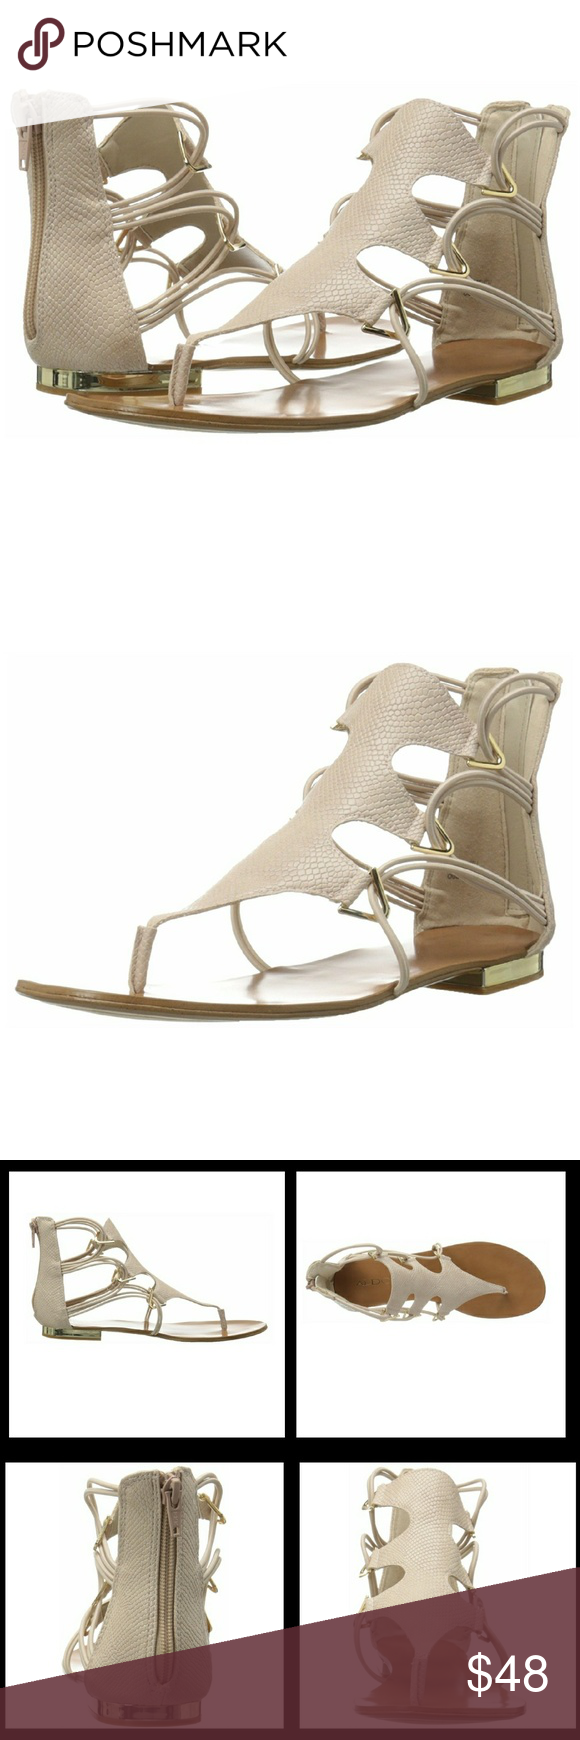 98e88ec3ab50  NEW  Aldo Barbiana Gladiator Sandals New in Box Aldo Women s Barbiana Gladiator  Sandals Size  8 Color  Bone -heel measures approx 0.5